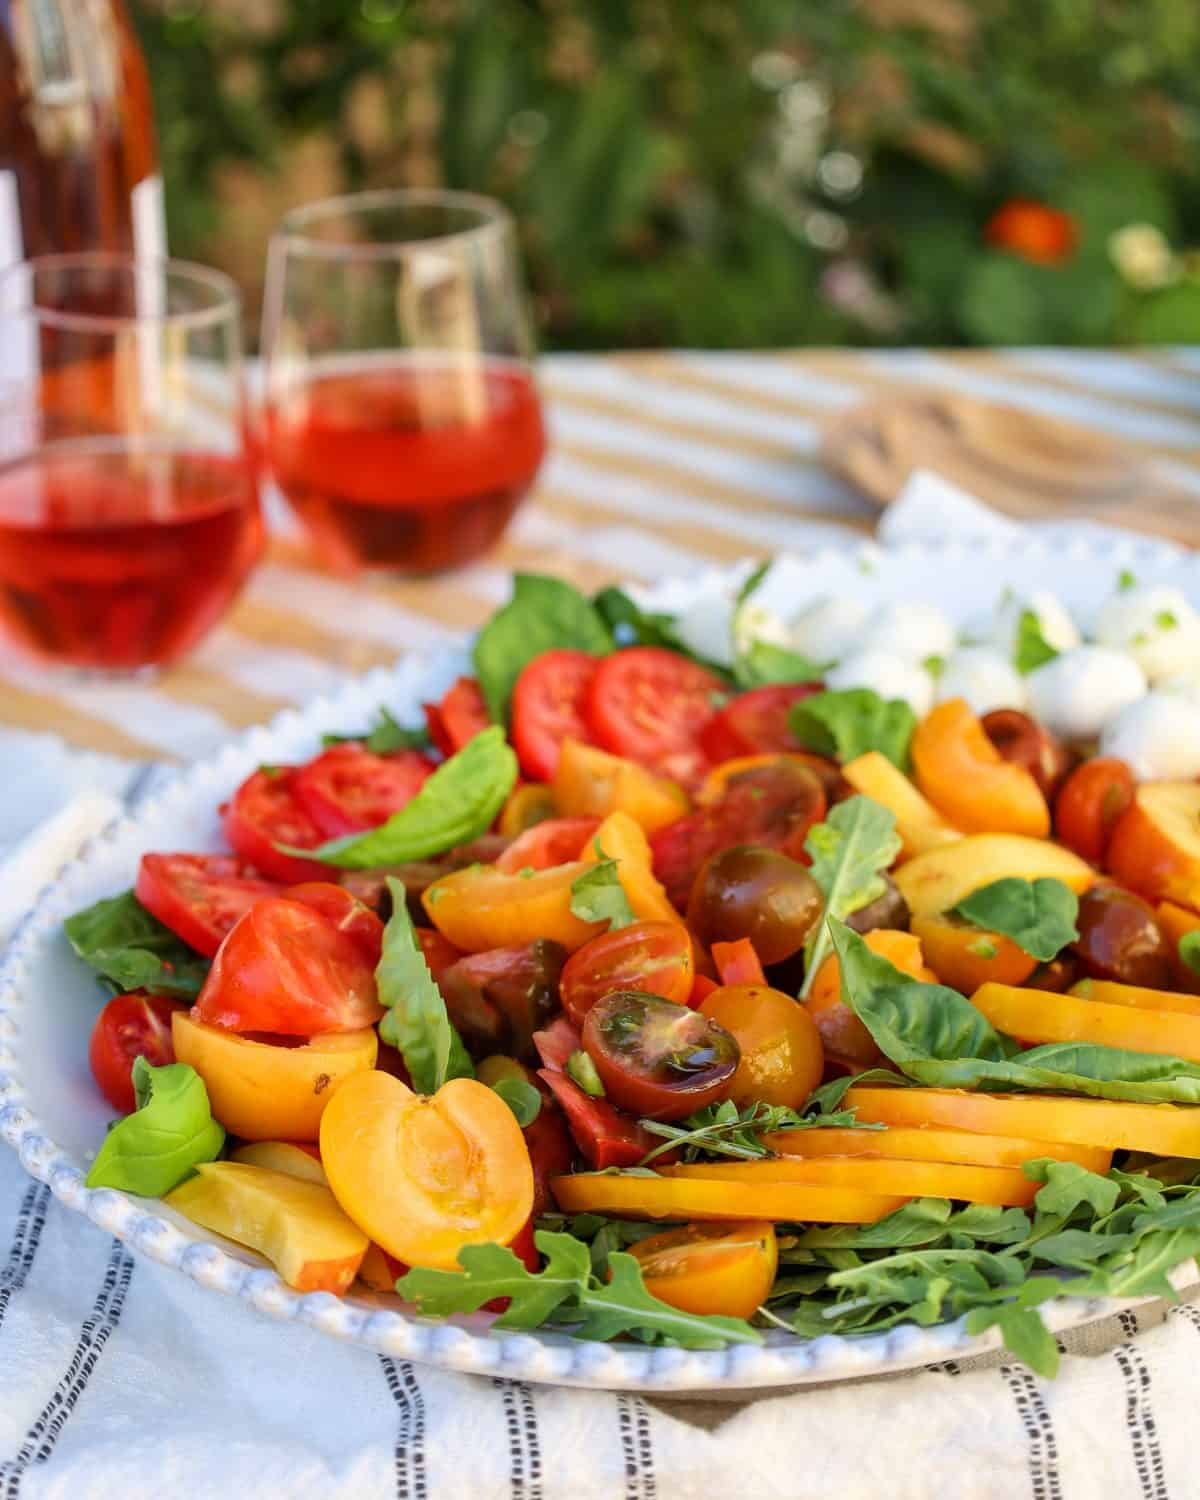 Heirloom Tomato Salad with Stone Fruits